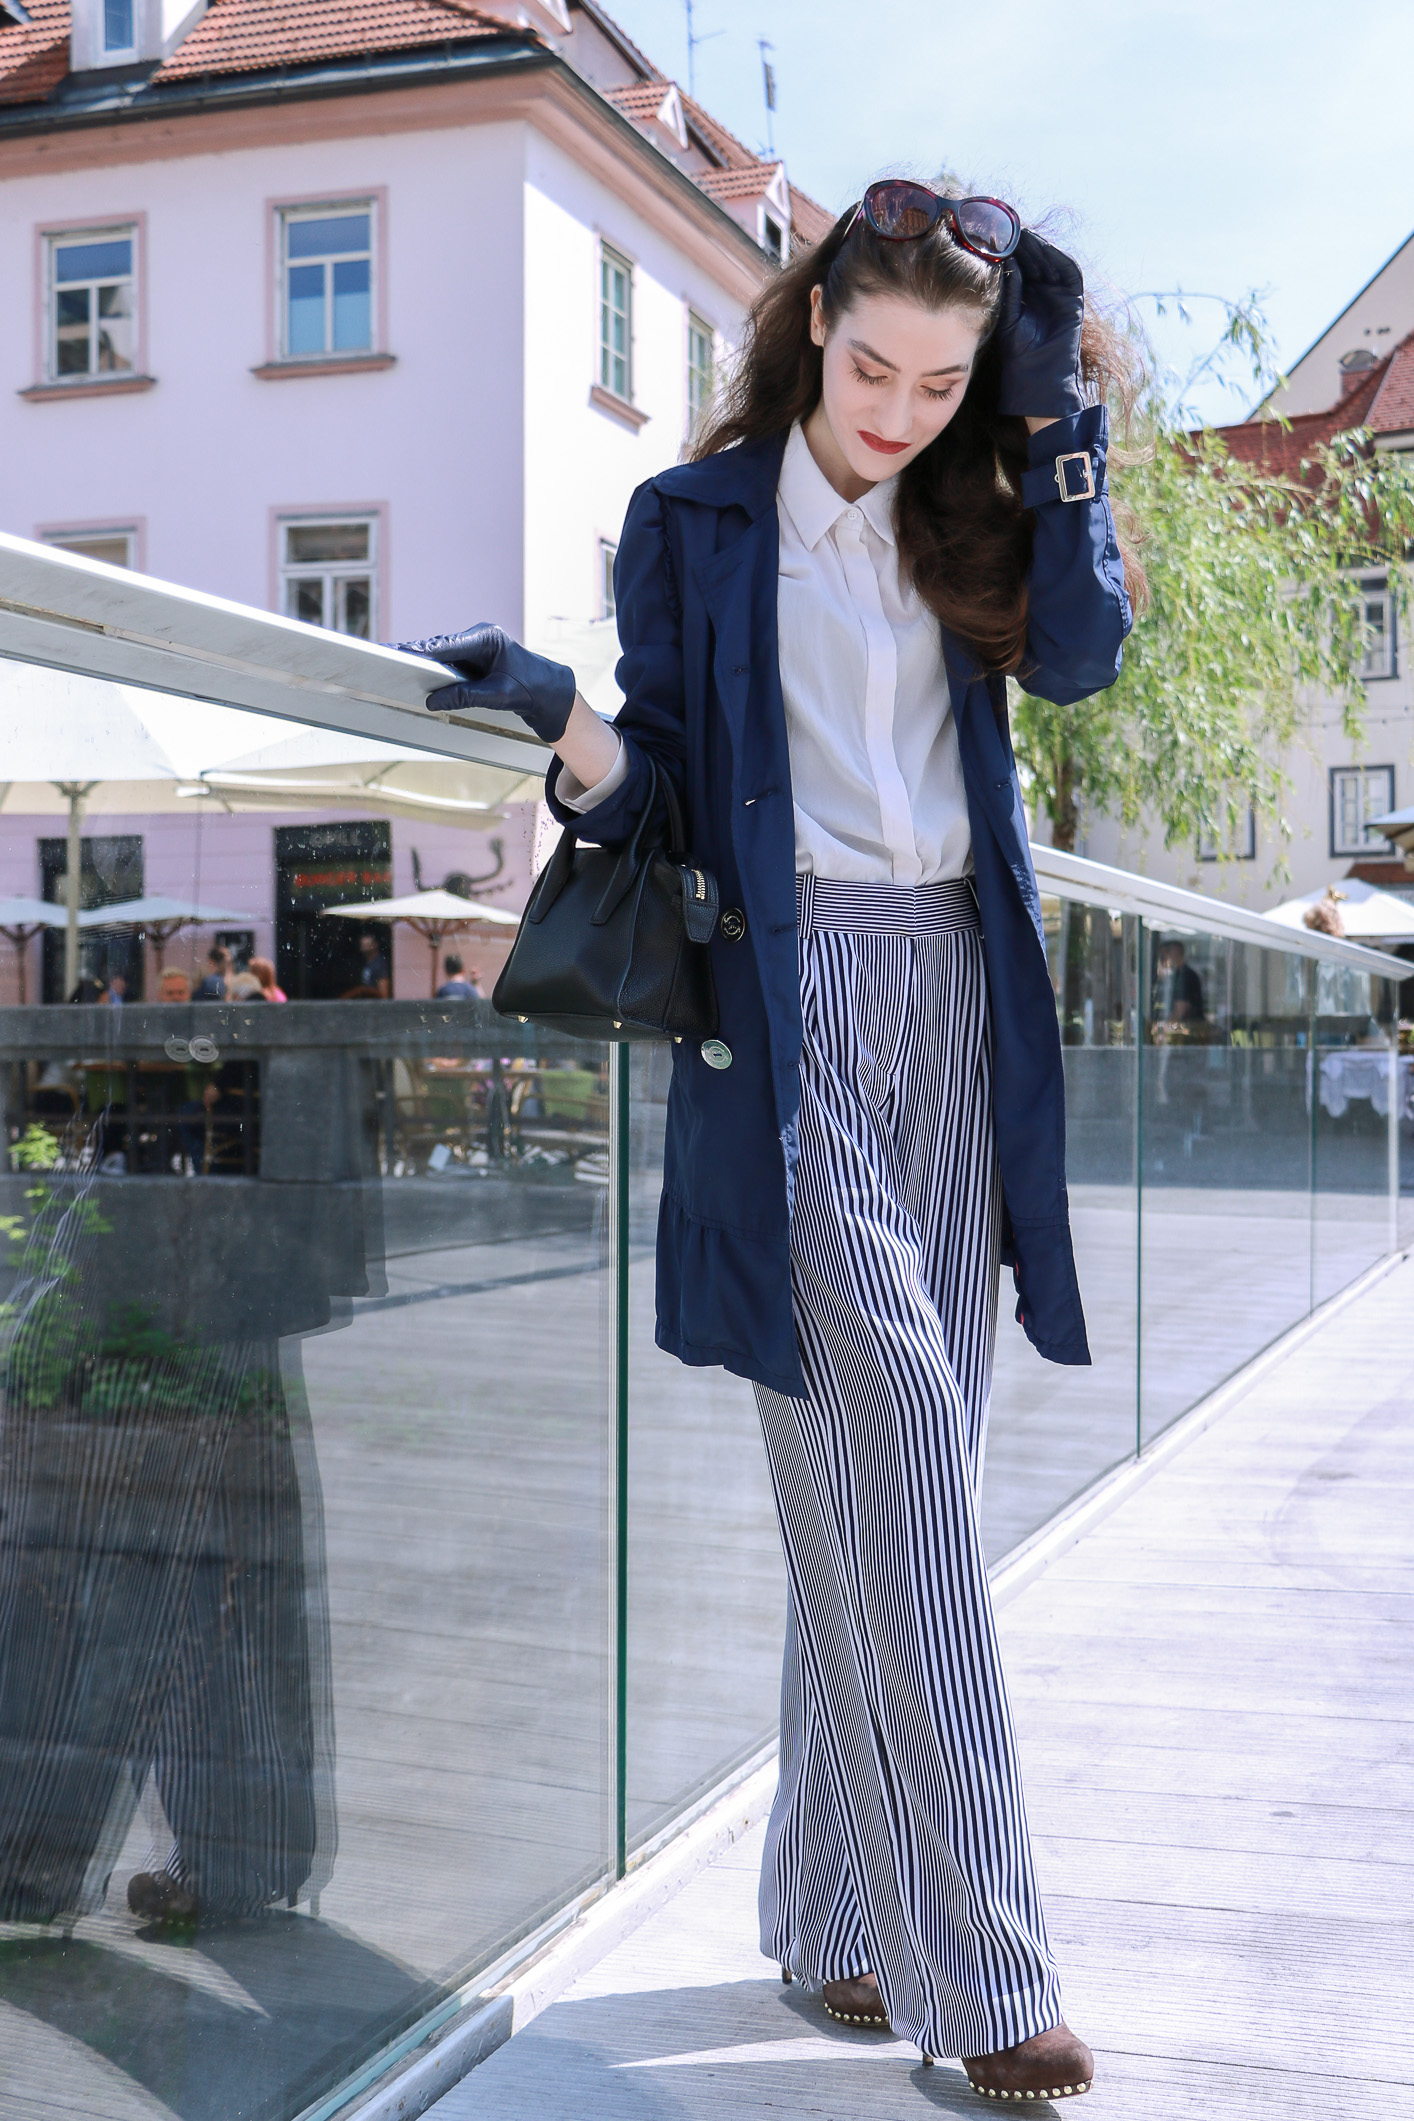 Fashion blogger Veronika Lipar of Brunette From Wall Street sharing how to style wide-leg striped trousers for a chic look this spring